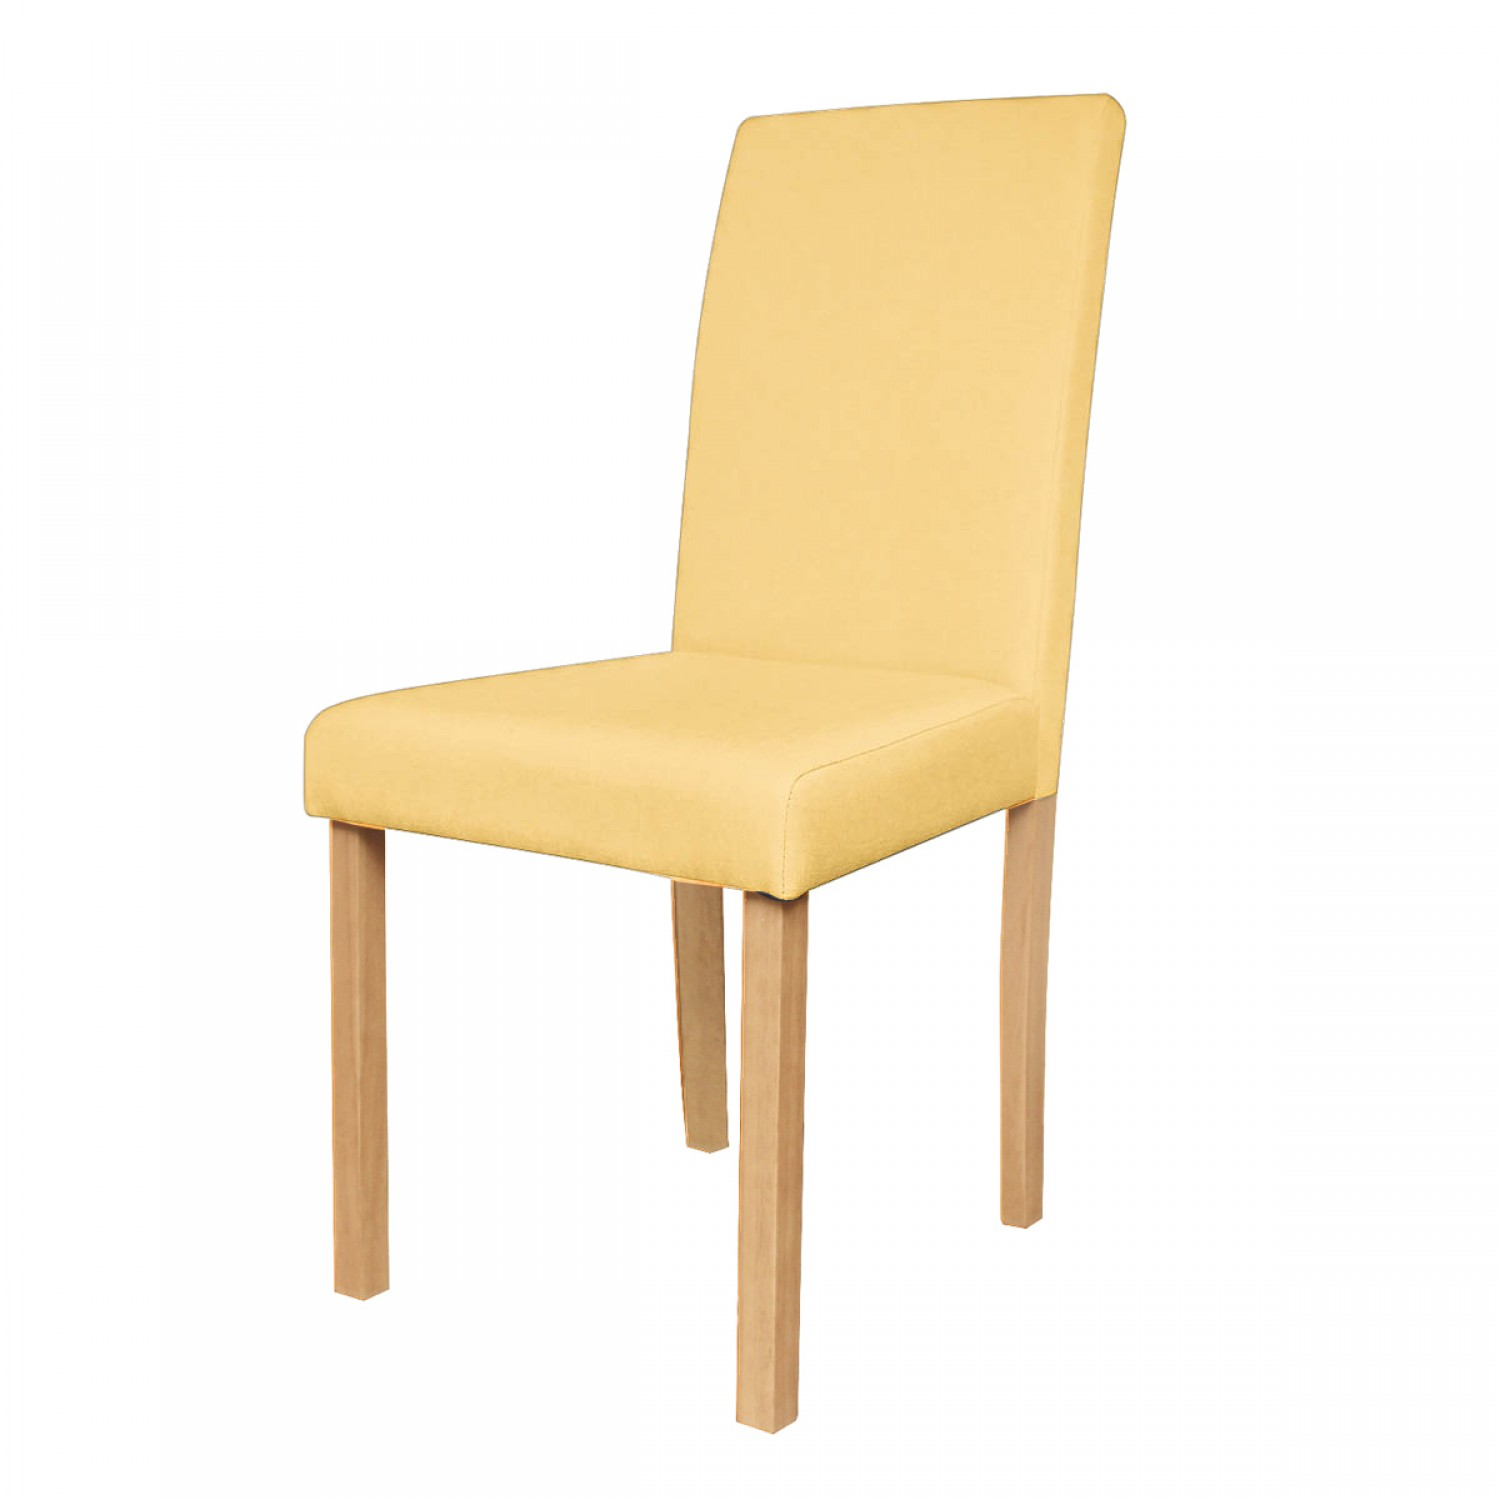 Chaise de salon en tissu jaune lot de 2 koya design for Chaise en tissu